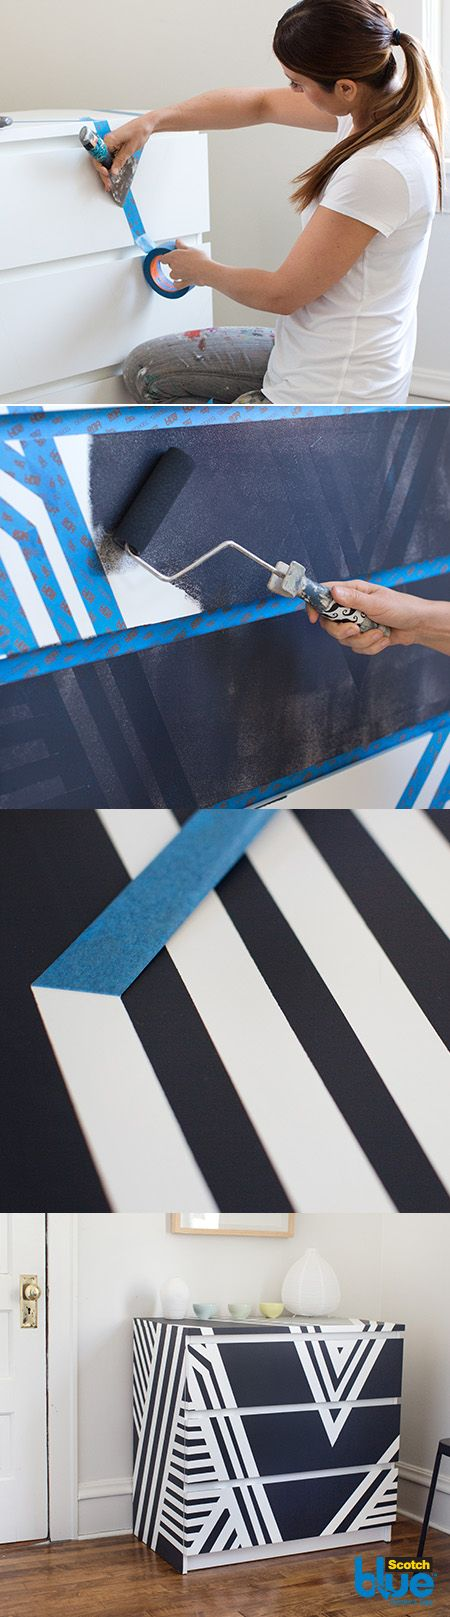 Let your creativity shine with our Striking Linework pattern. This incorporates sharp angles that personalize the simple stripe and give it power and visual impact. A fractured, abstract look also helps dimensionalize stripes to add depth and form to any surface.